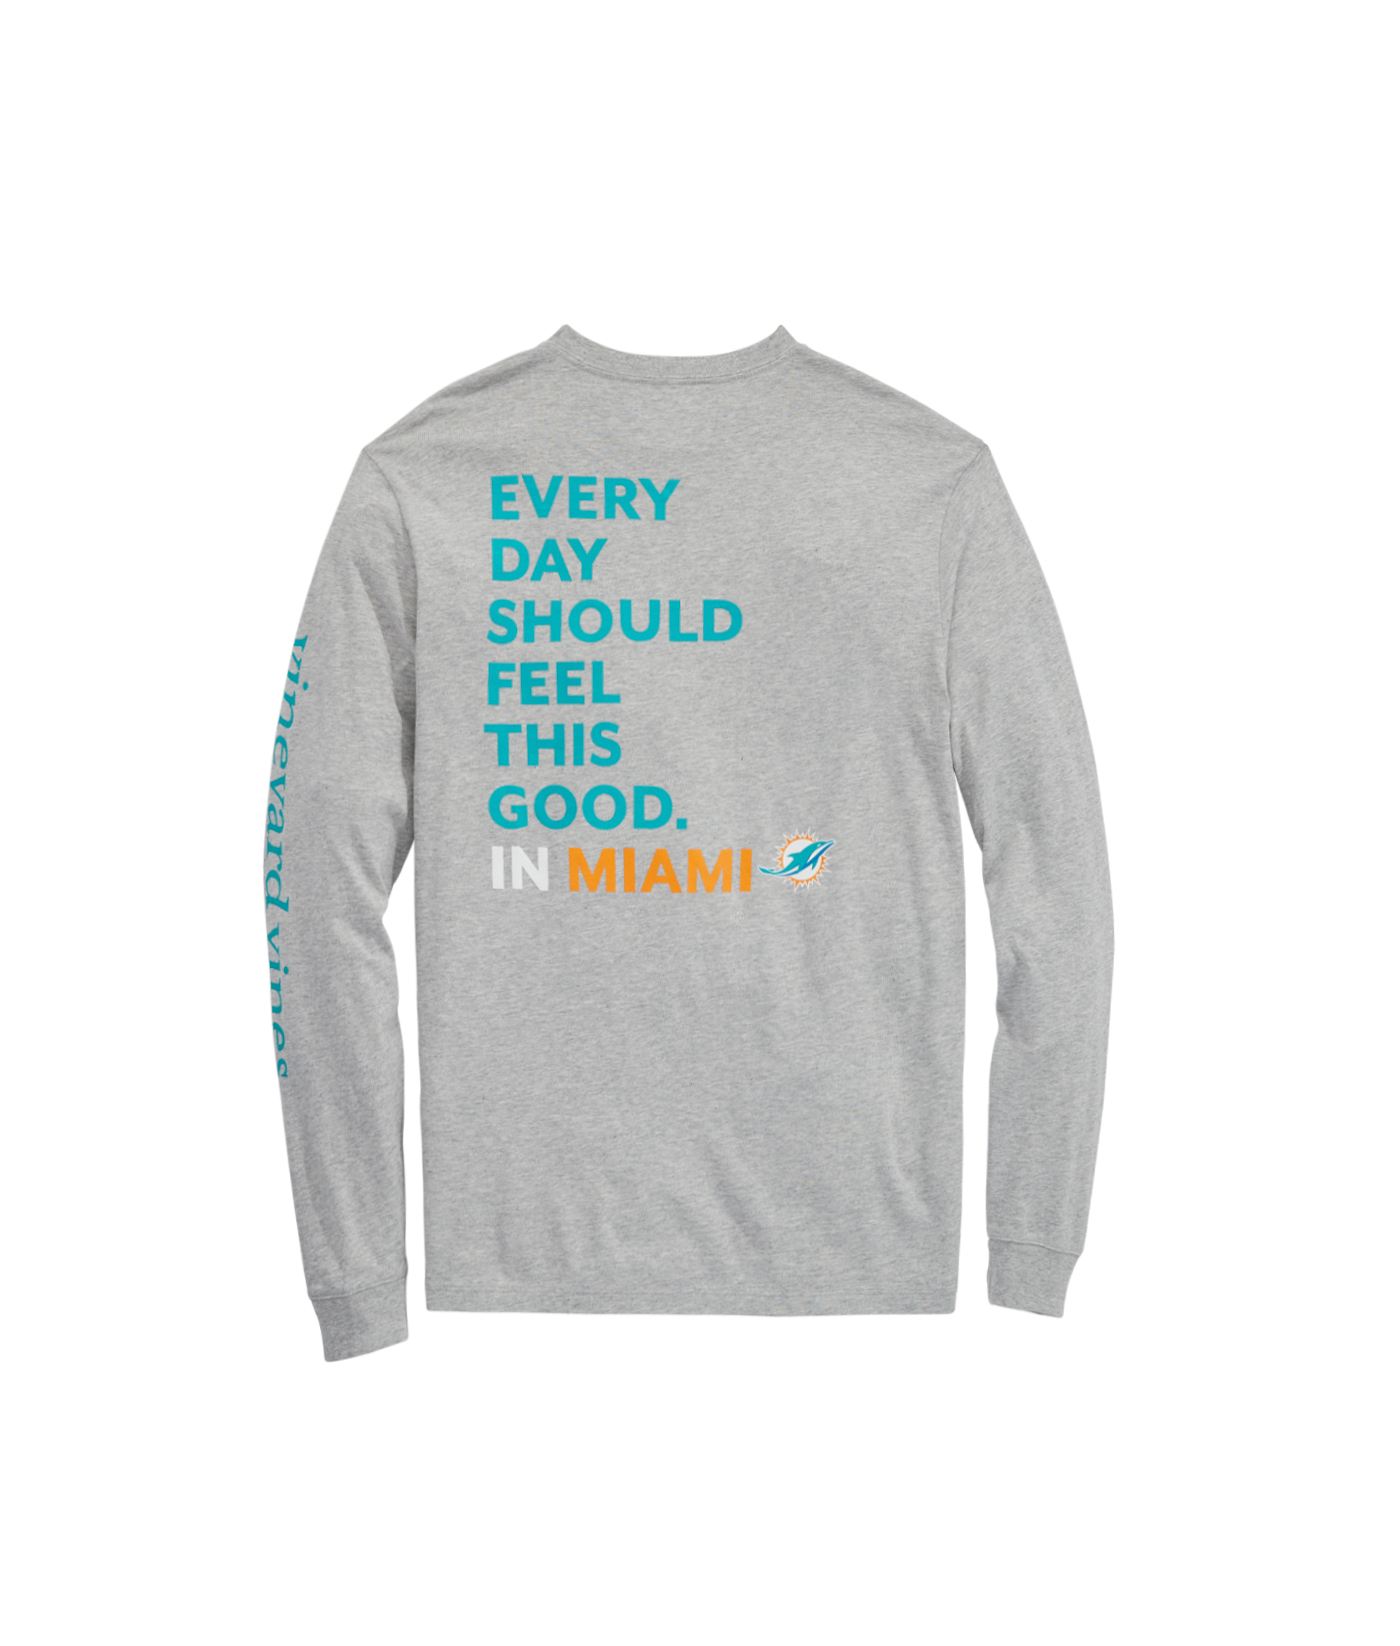 miami dolphins long sleeve t shirt